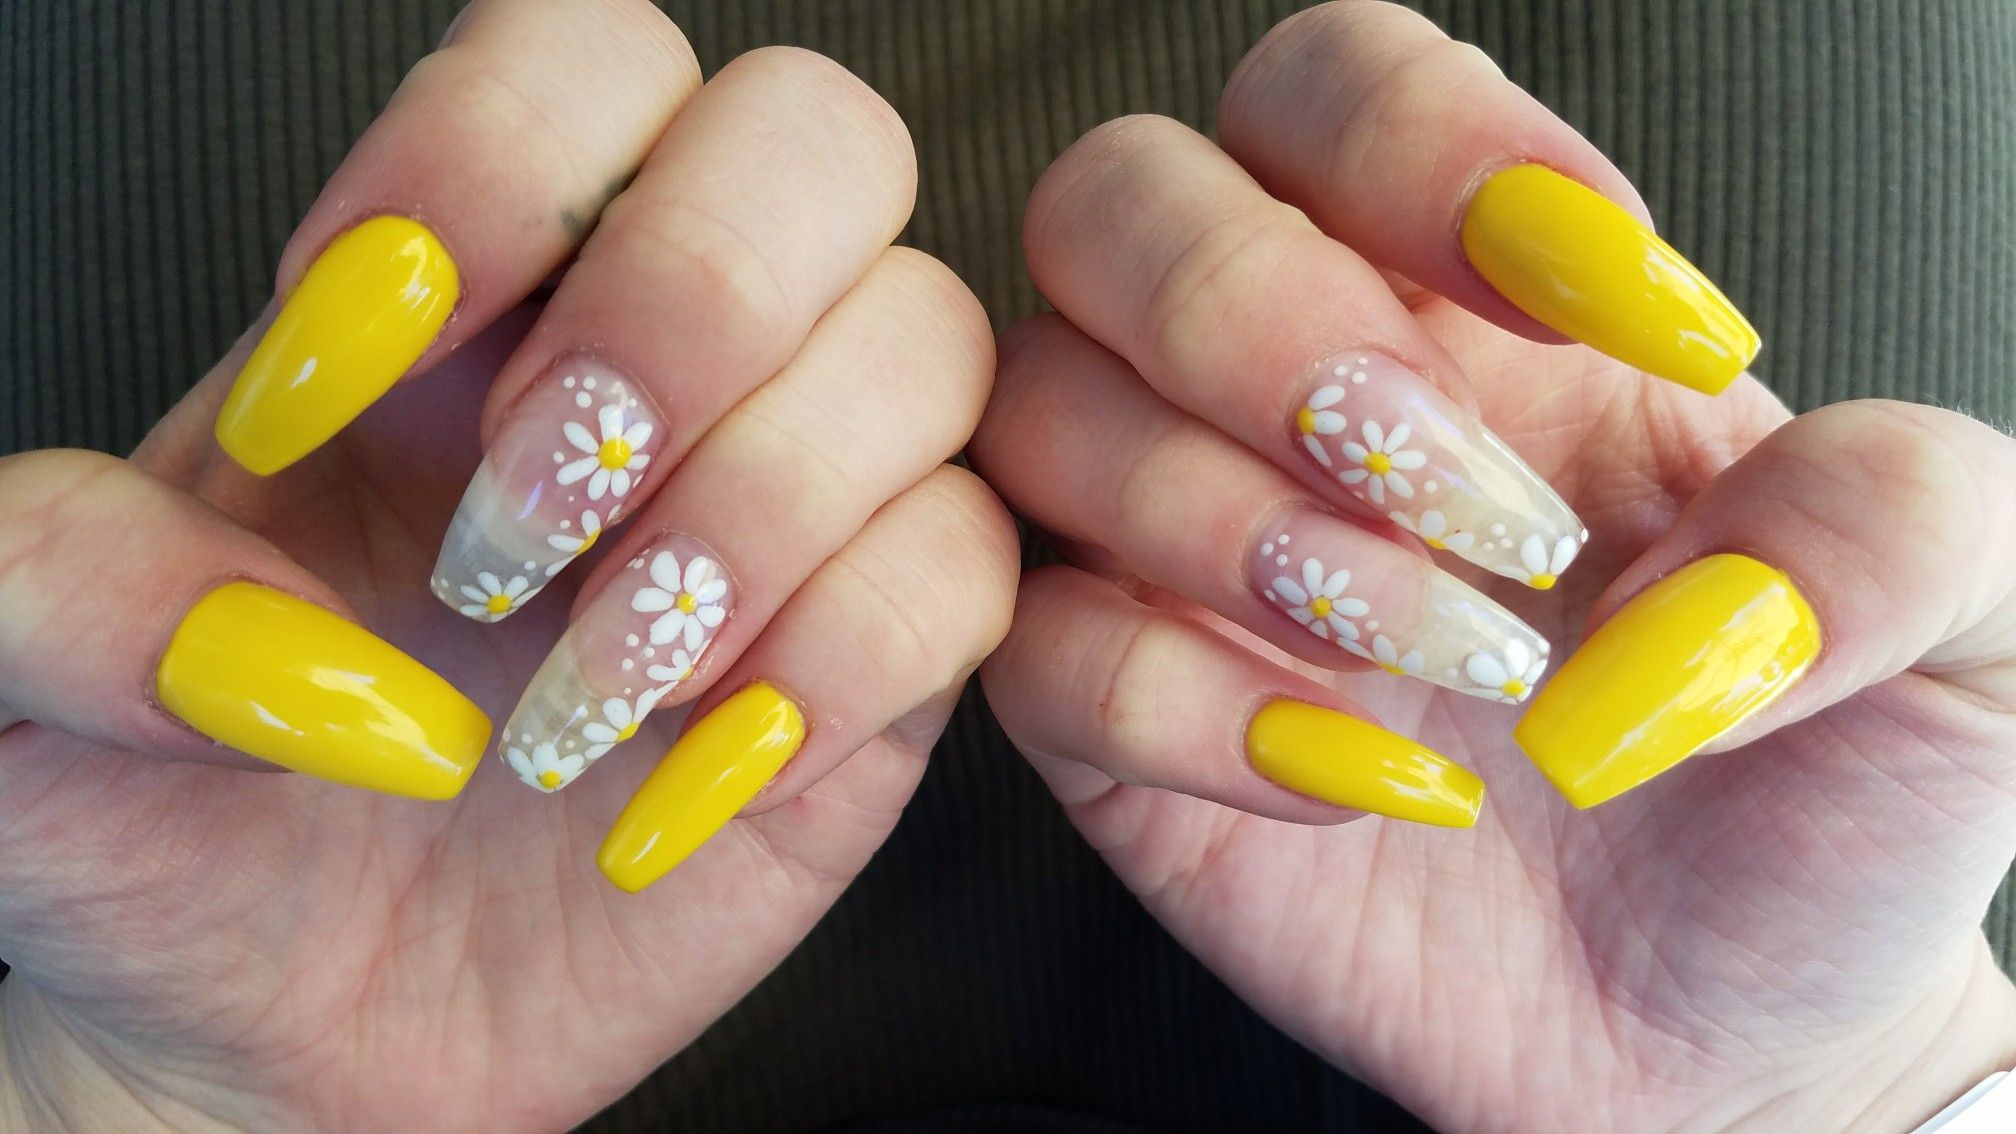 Daisy Nails | n a i l s | Pinterest | Daisy nails, Nail inspo and Makeup